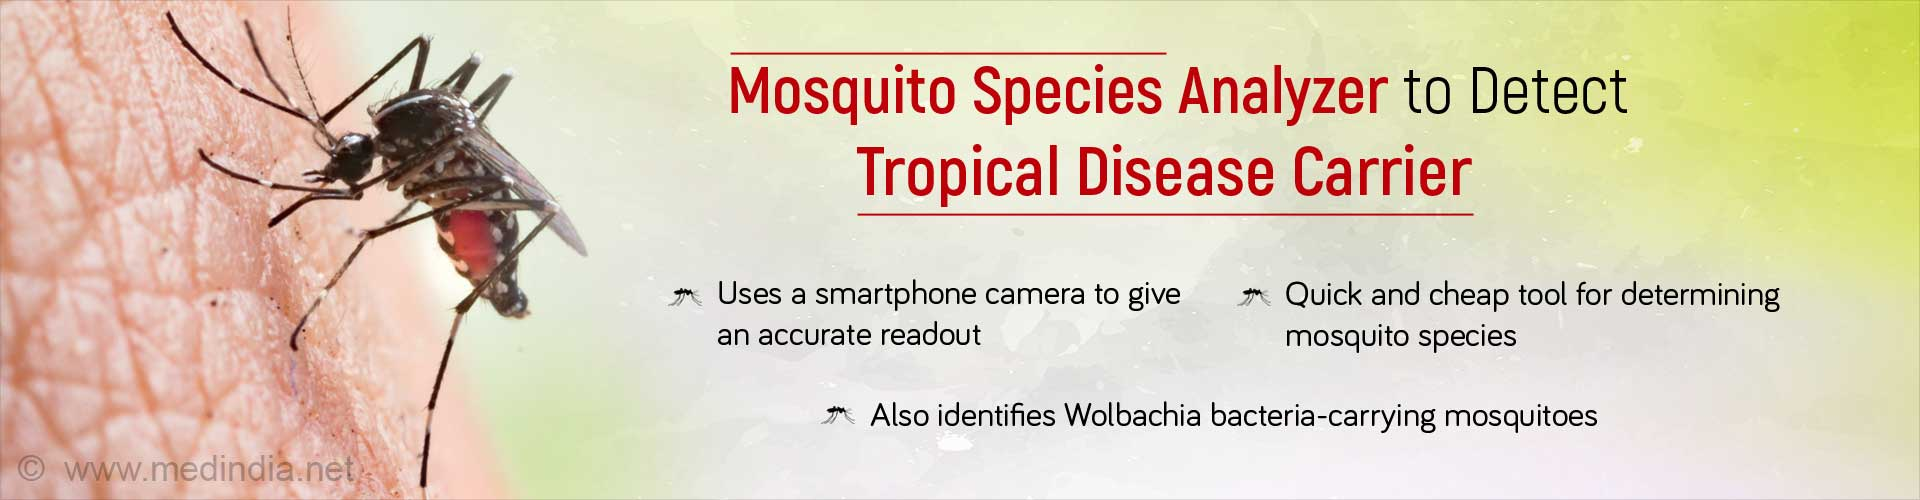 Mosquitoes Causing Dengue and Yellow Fever are Easily Identified With a New Analyzer